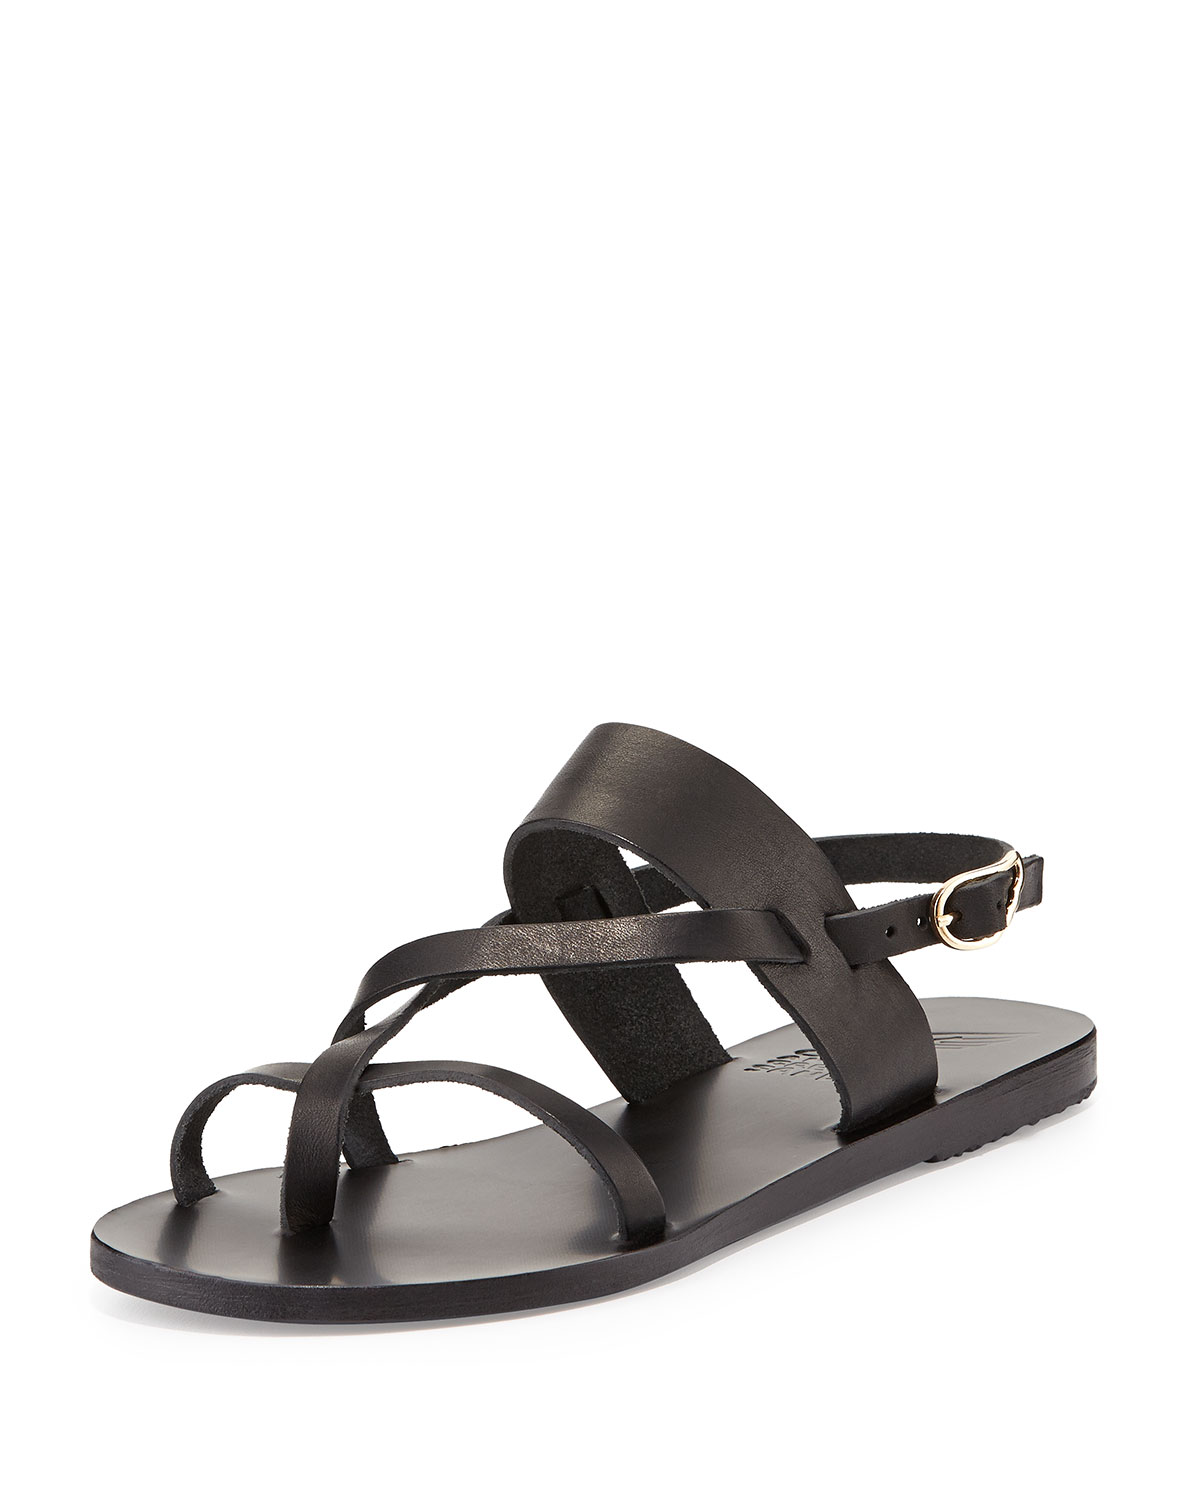 85ebd4f71 Ancient Greek Sandals Alethea Leather Flat Sandal